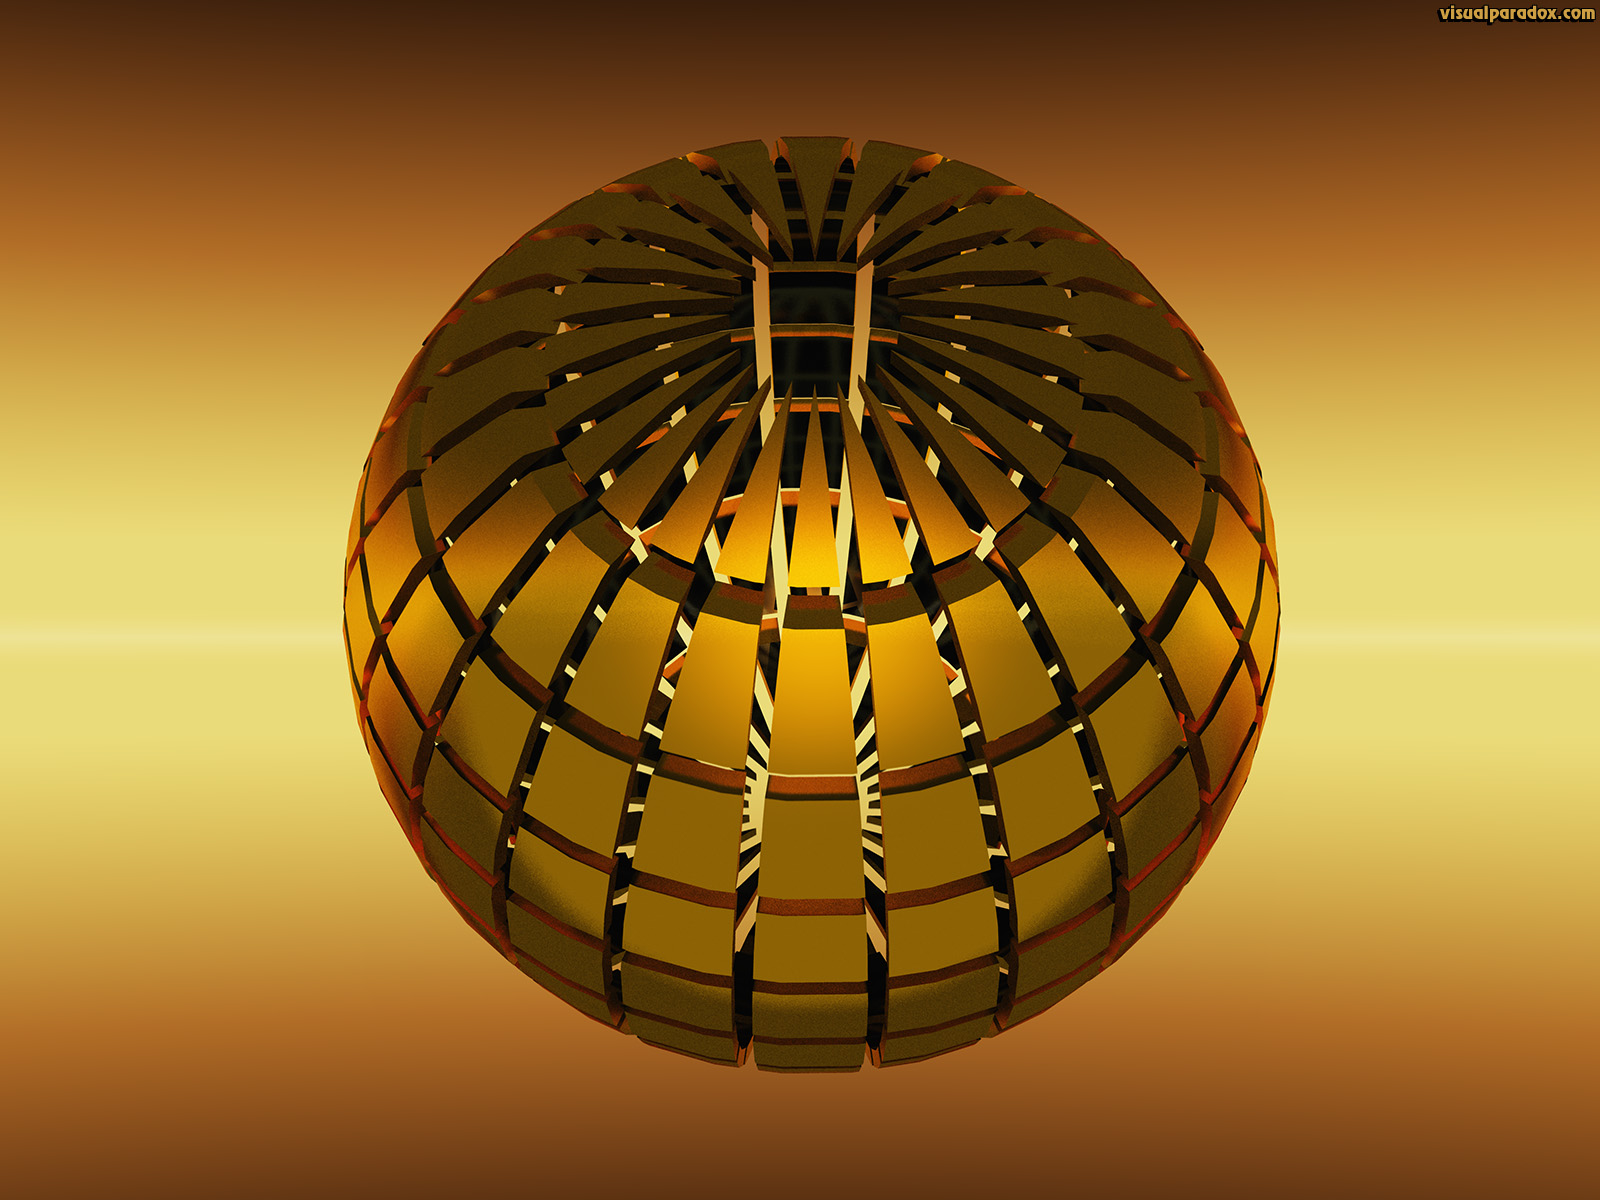 abstract, ball, business, cage, circle, circular, concept, ball, design, globe, glossy, gold, golden, graphic, grid, logo, mark, metal, metallic, modern, orb, round, slice, sphere, symbol, technology, travel, web, world, yellow, 3d, wallpaper